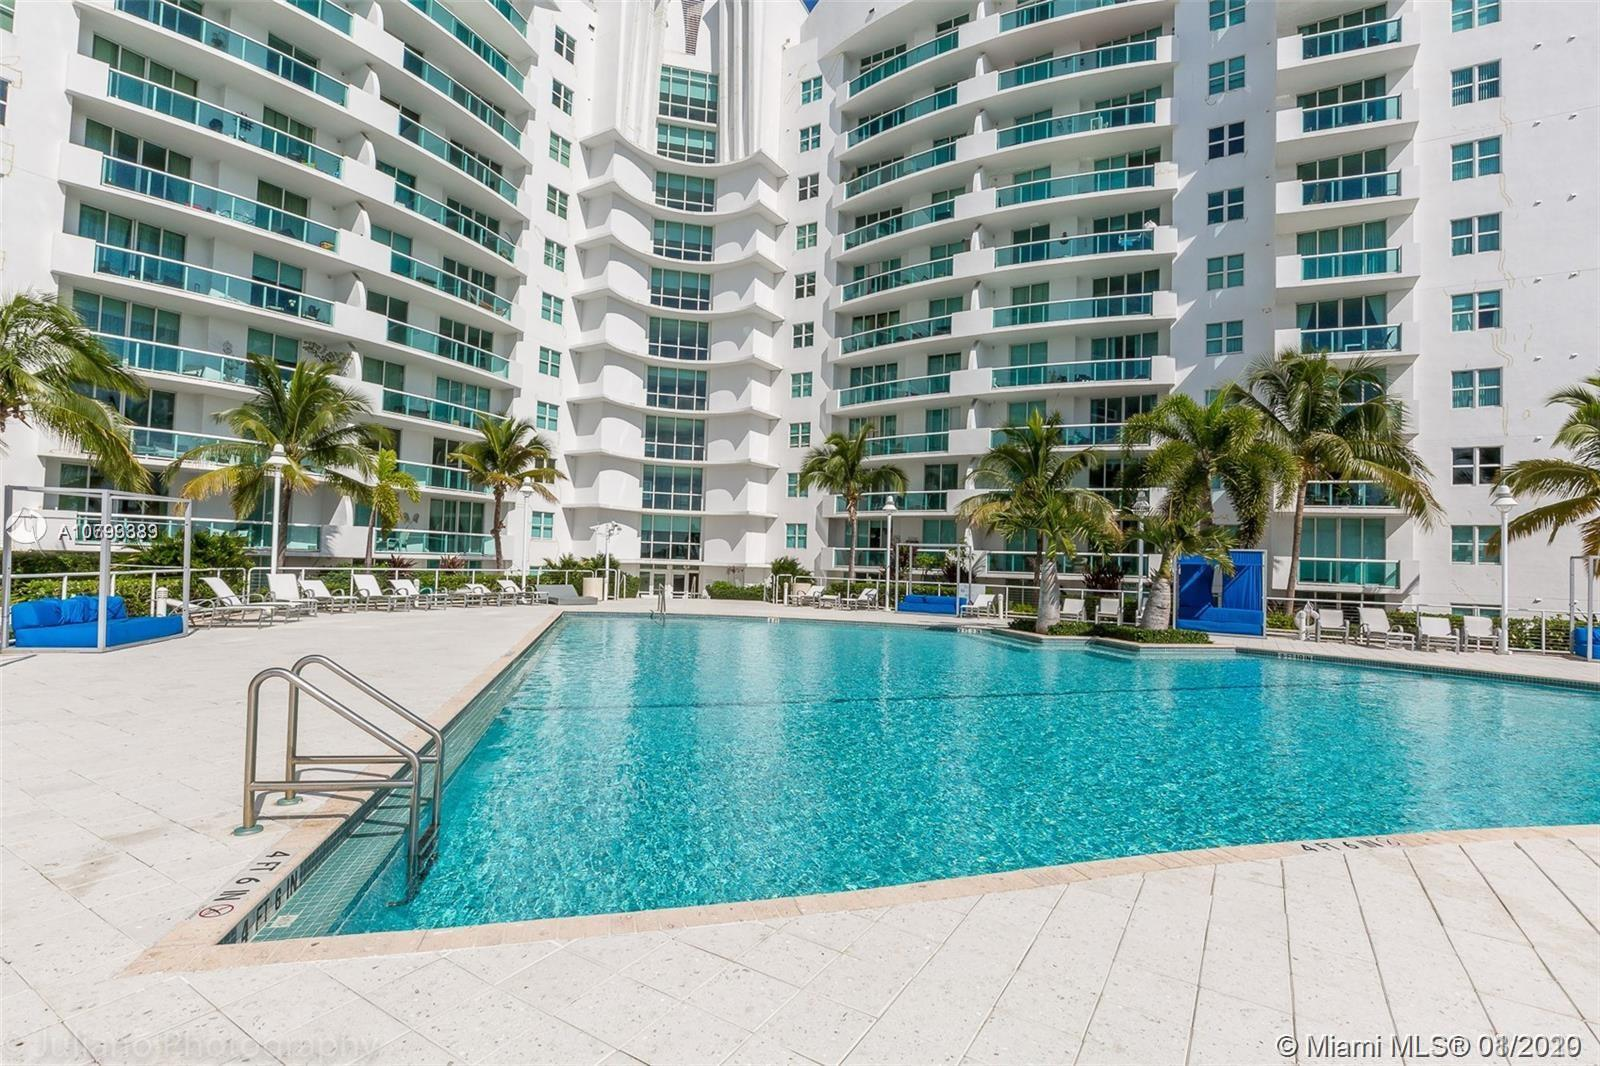 LUXURY WATER FRONT UNIT 2 BED / 2 BATH IN NORTH BAY VILLAGE. MODERN KITCHEN WITH GRANITE COUNTER TOP